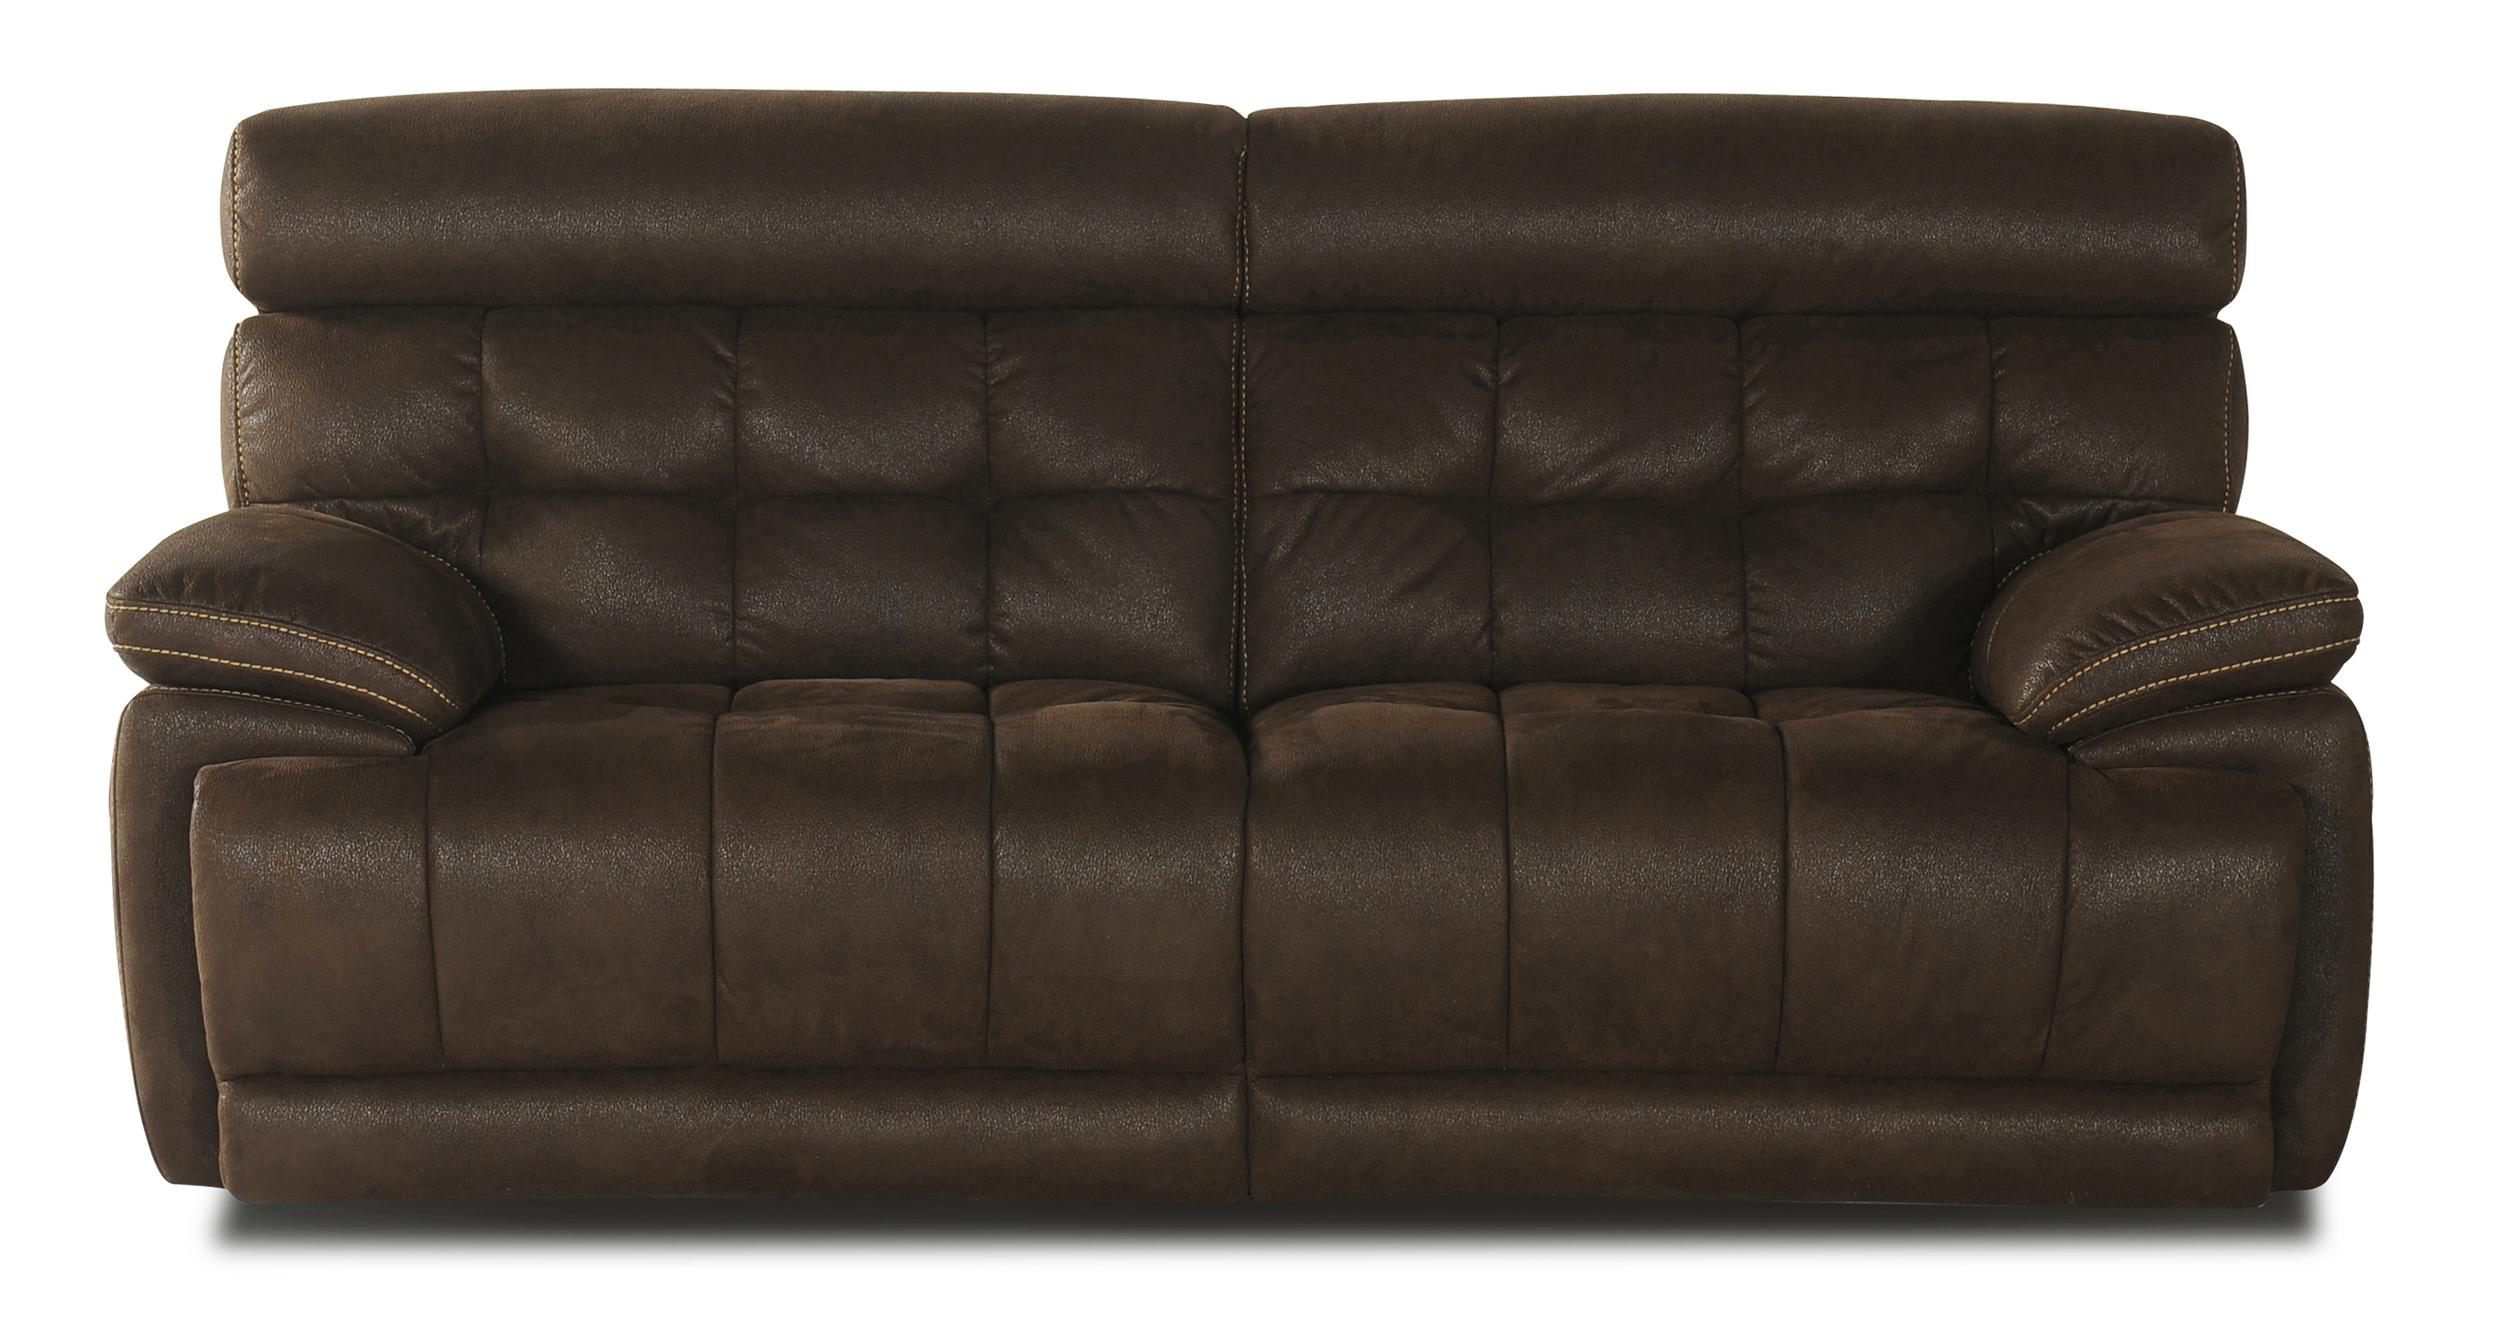 3538EM-FK Reclining Sofa by Violino at Furniture Superstore - Rochester, MN